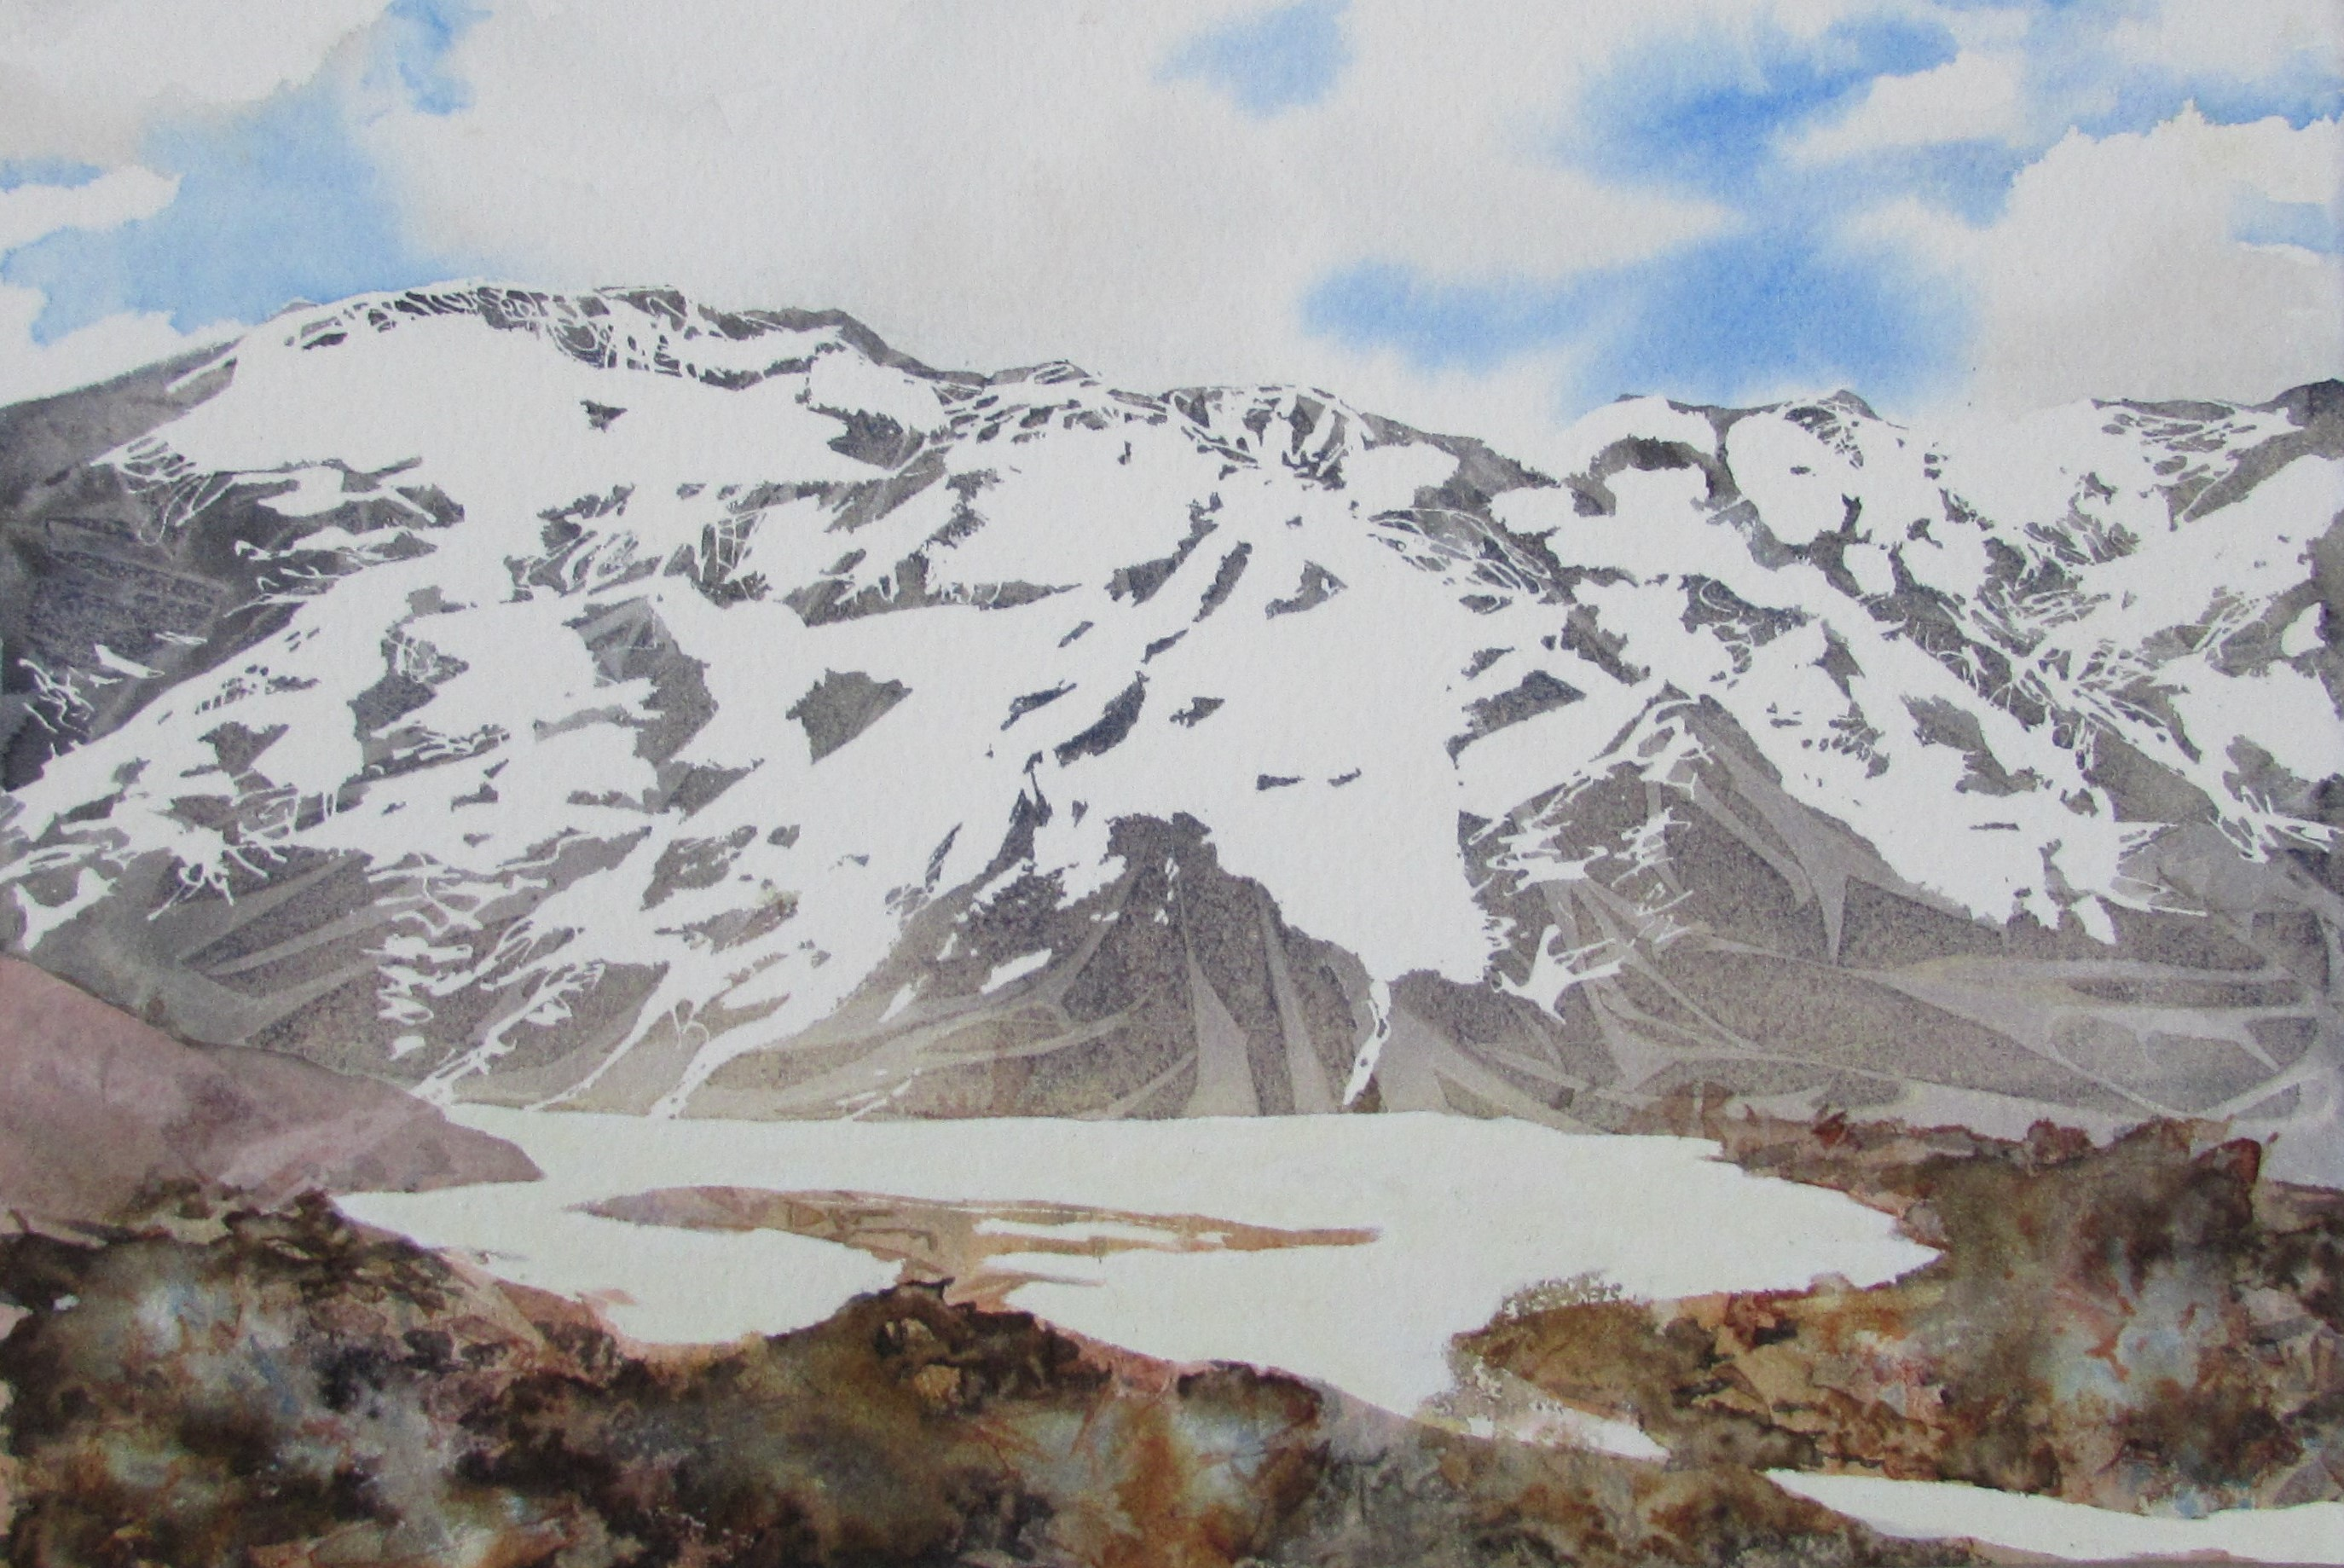 Snow Capped Mountains 1, New Zealand Series